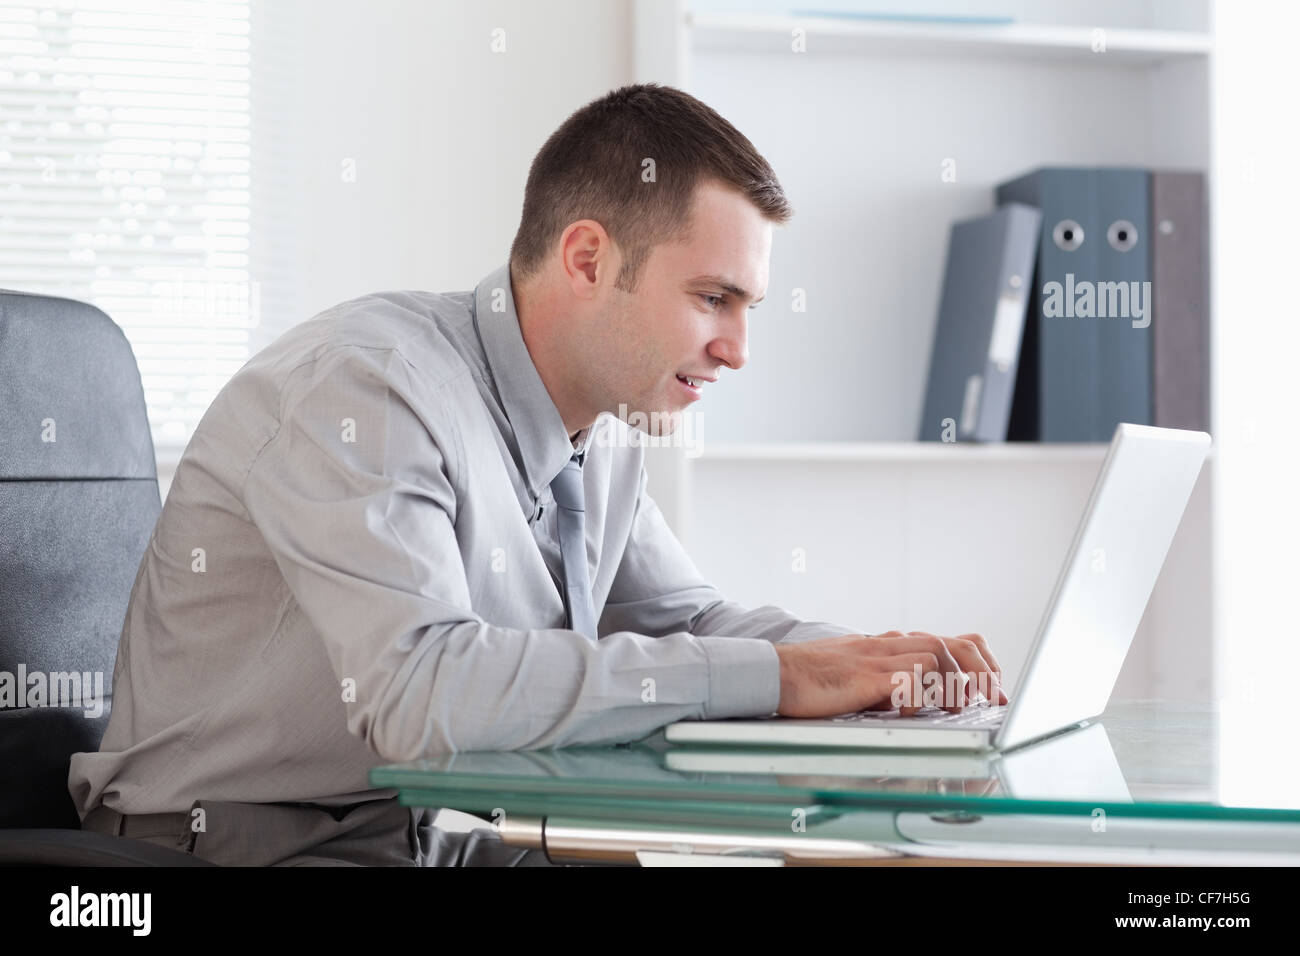 Businessman working concentrated on his laptop - Stock Image